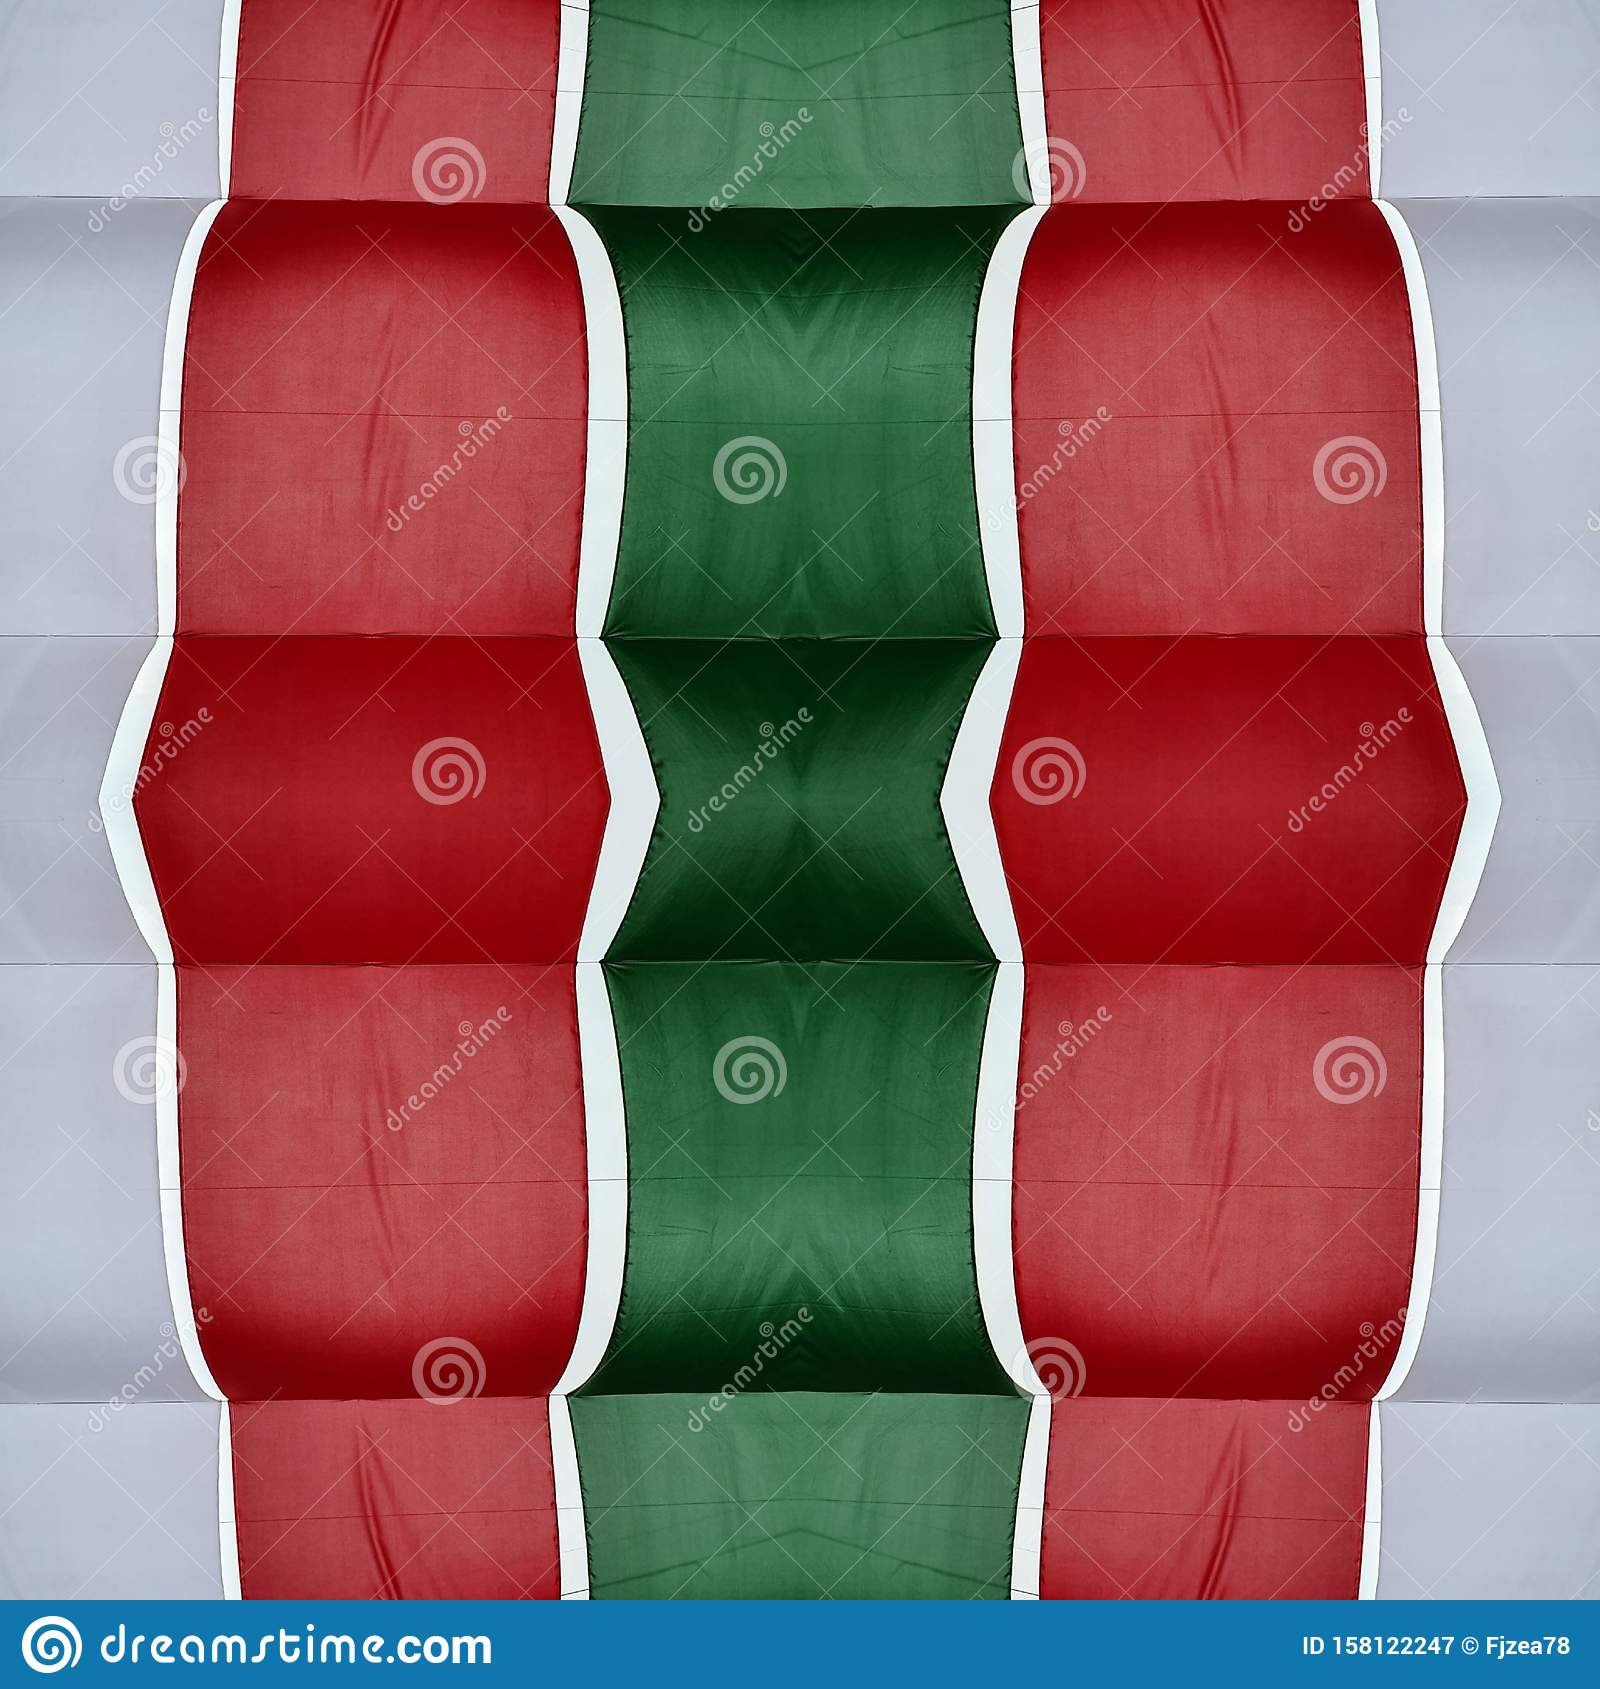 abstract design with cuts of fabric in green, white and red color, background and texture